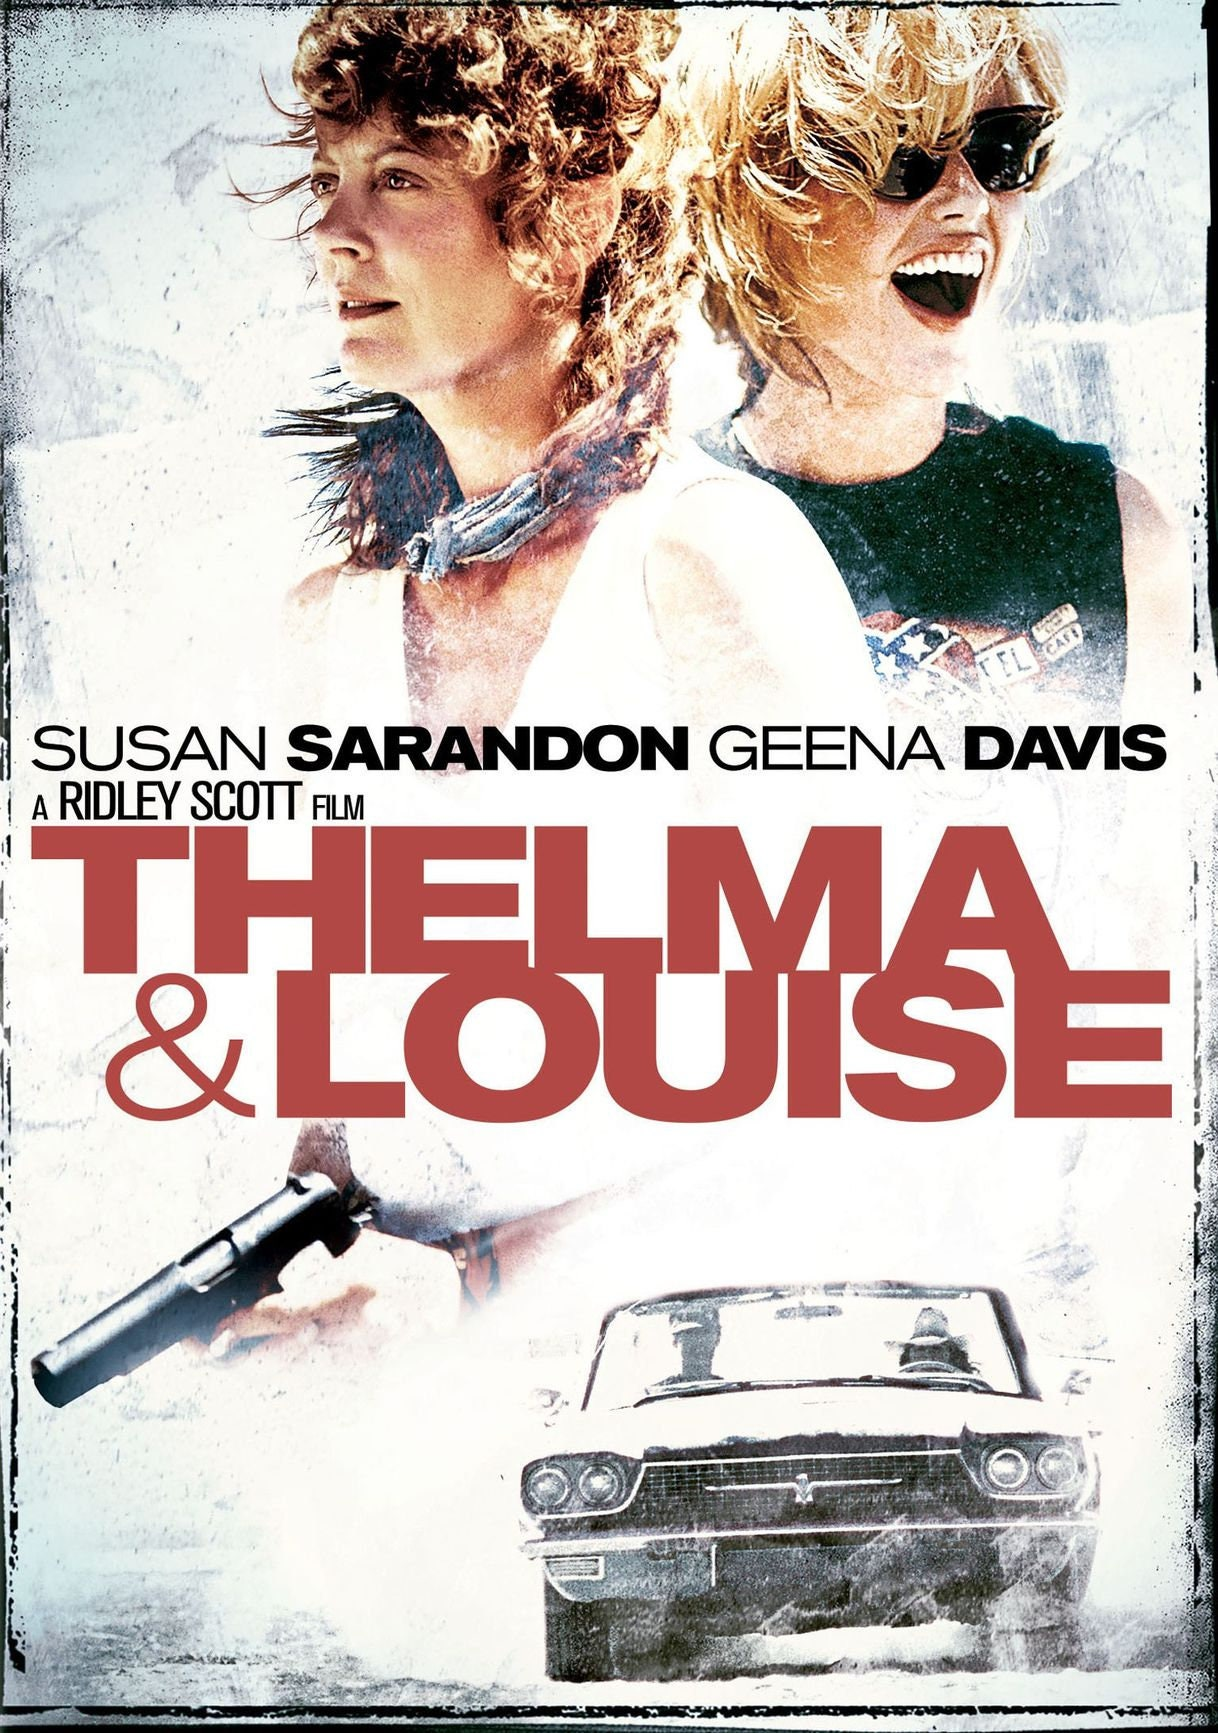 Thelma & Louise Movie Poster 1 Choose your size A4/A3/A2 | Etsy